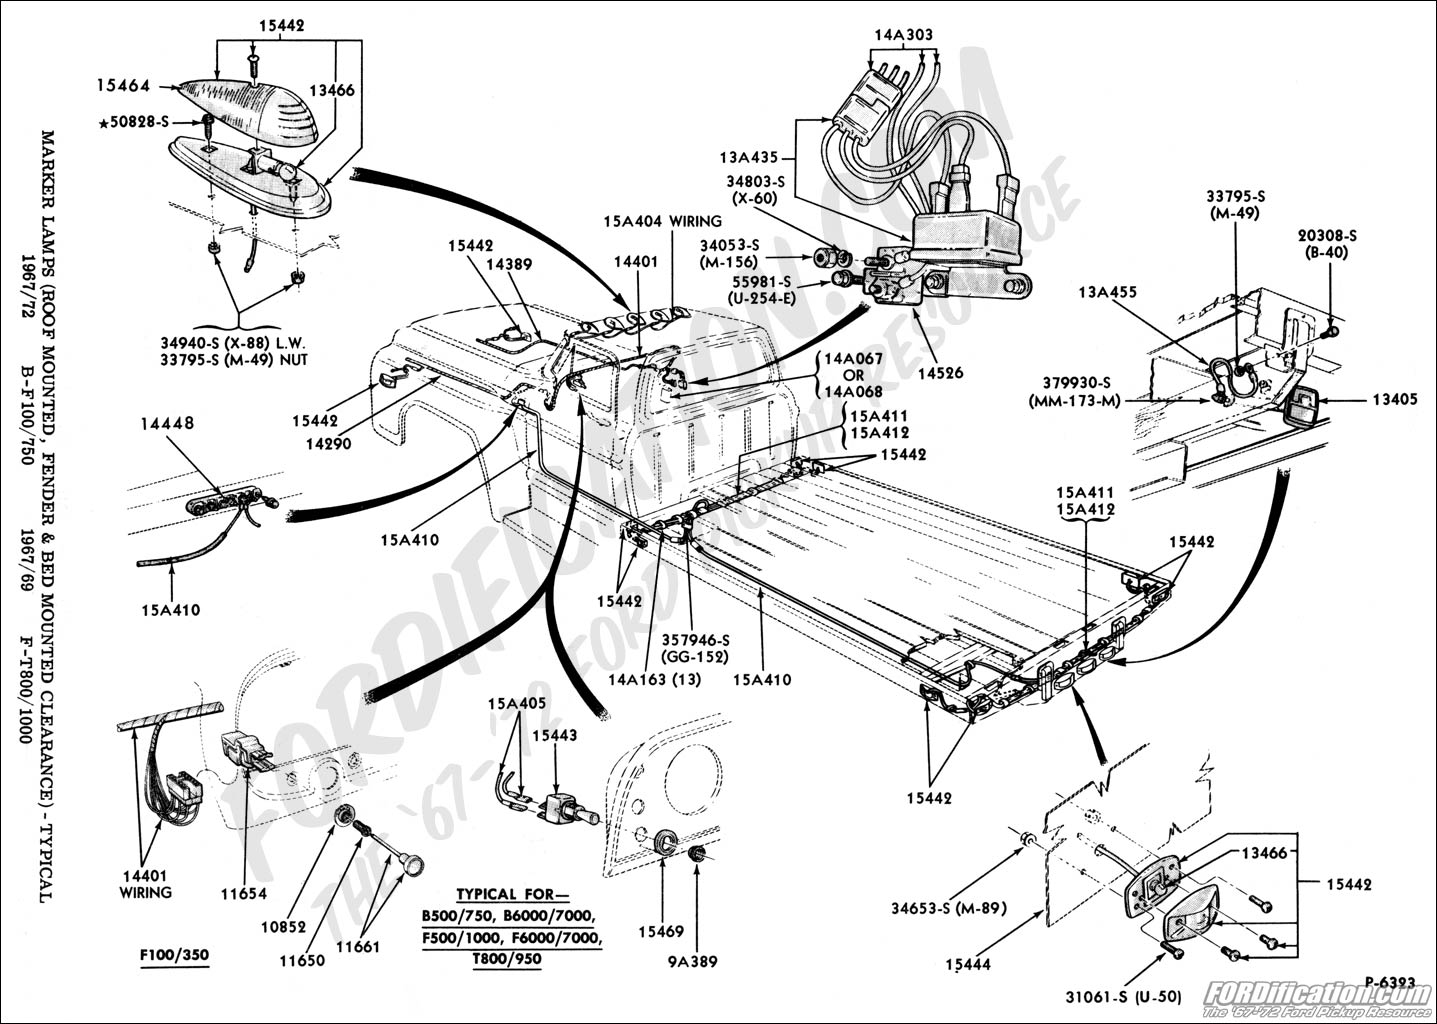 clearancelights ford truck technical drawings and schematics section i marker light wiring diagram at soozxer.org